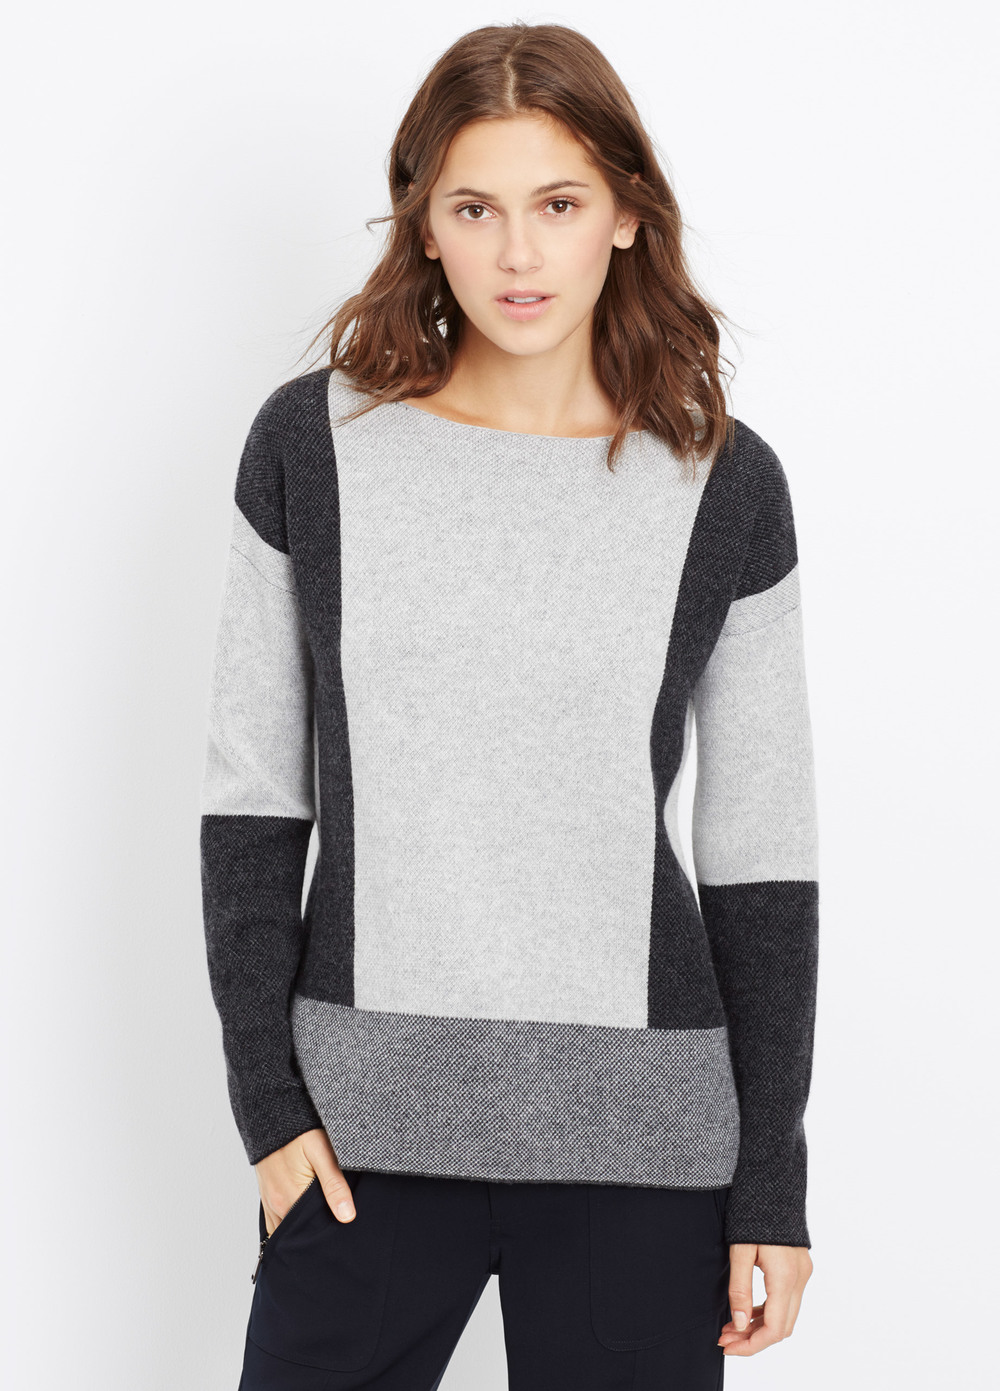 Vince Wool Cashmere Intarsia Colorblock Sweater. Available in two colors. Vince. Was: $345 Now: $138.